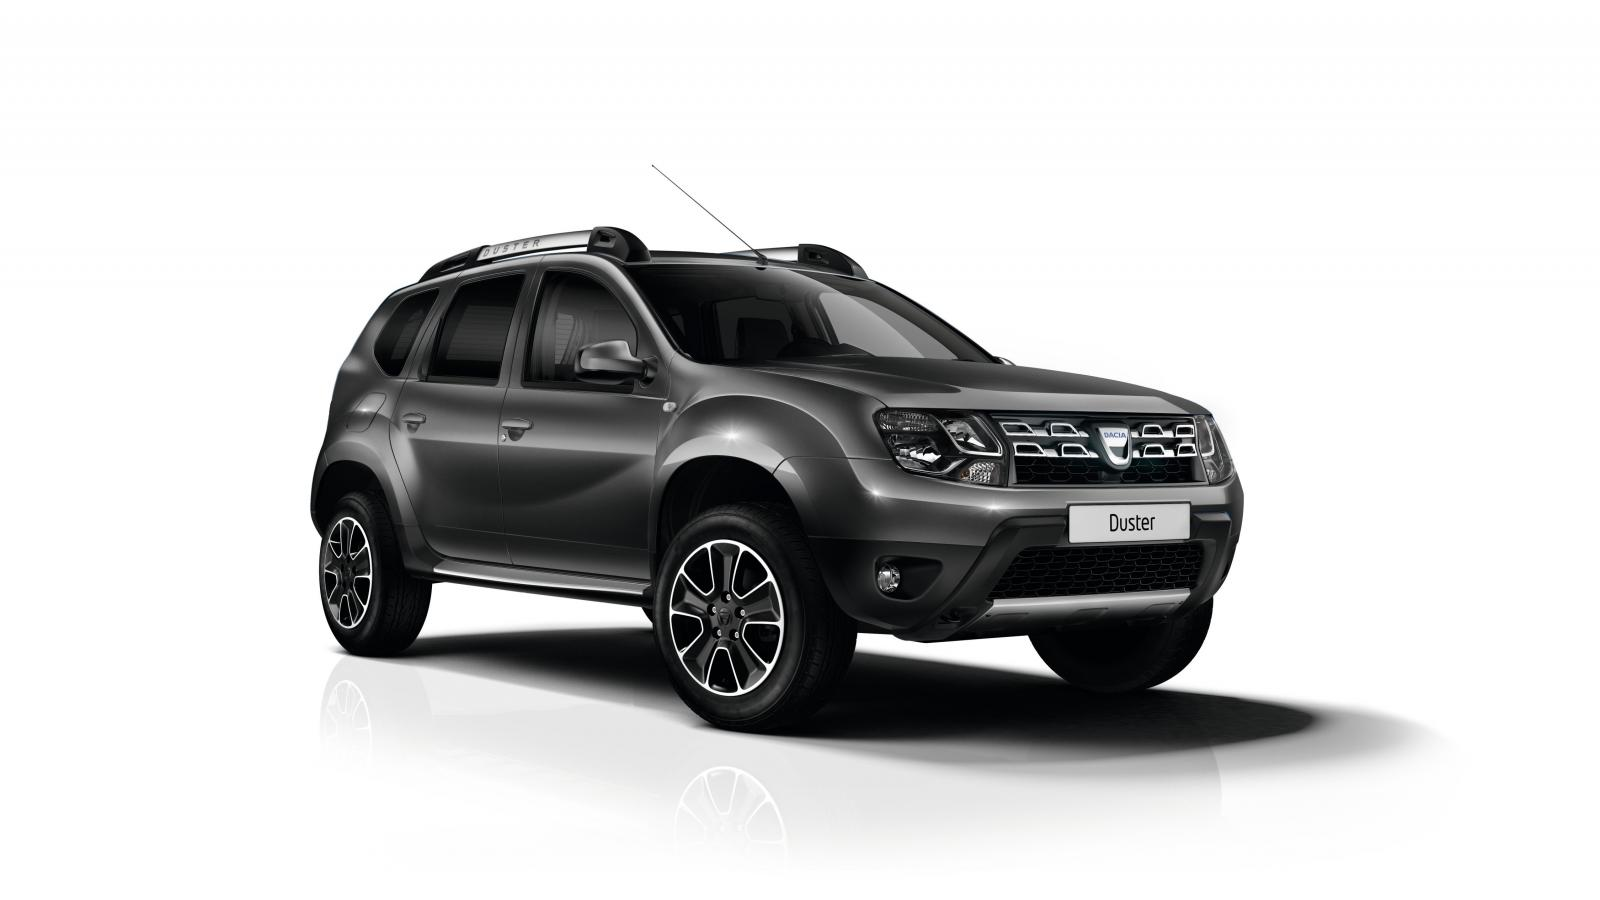 dacia announces logan and sandero models with easy r automatic gearbox 2016 duster edition. Black Bedroom Furniture Sets. Home Design Ideas